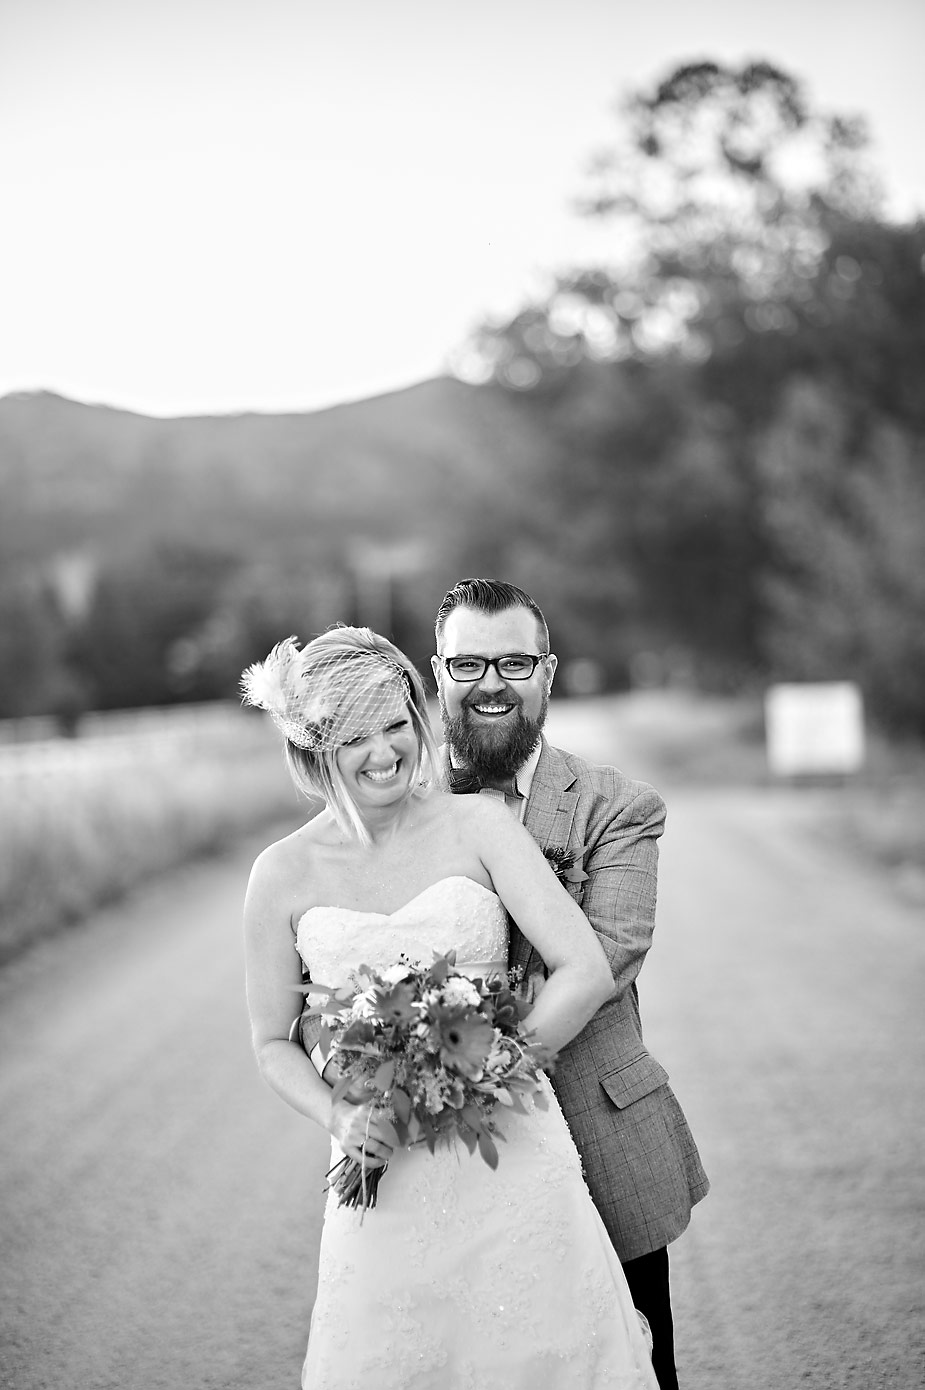 wpid-pasture_of_plenty_boulder_farm_wedding_photos_034-2015-08-20-21-00.jpg